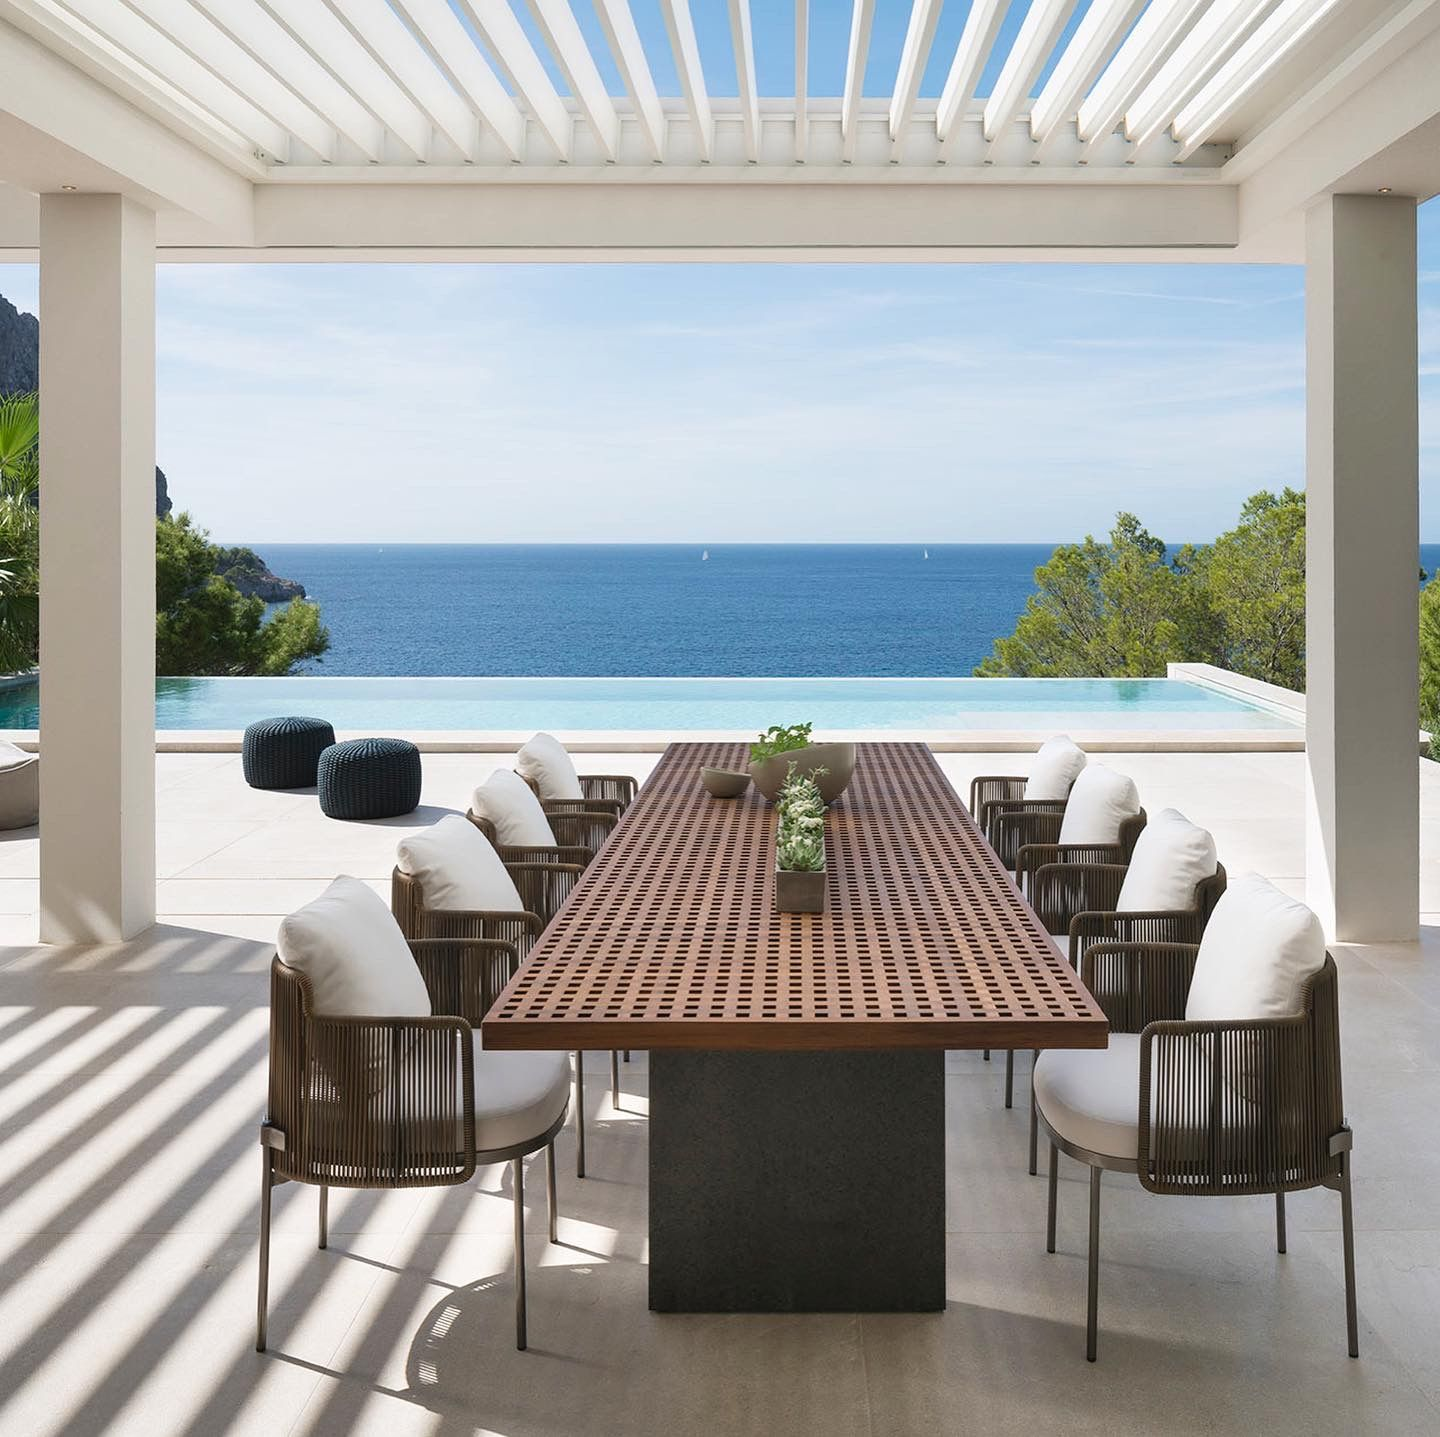 Outdoor Furniture In 2020 Outdoor Furniture Sets Outdoor Furniture Luxury Interior Design - Outdoor Furniture Clearance Houston